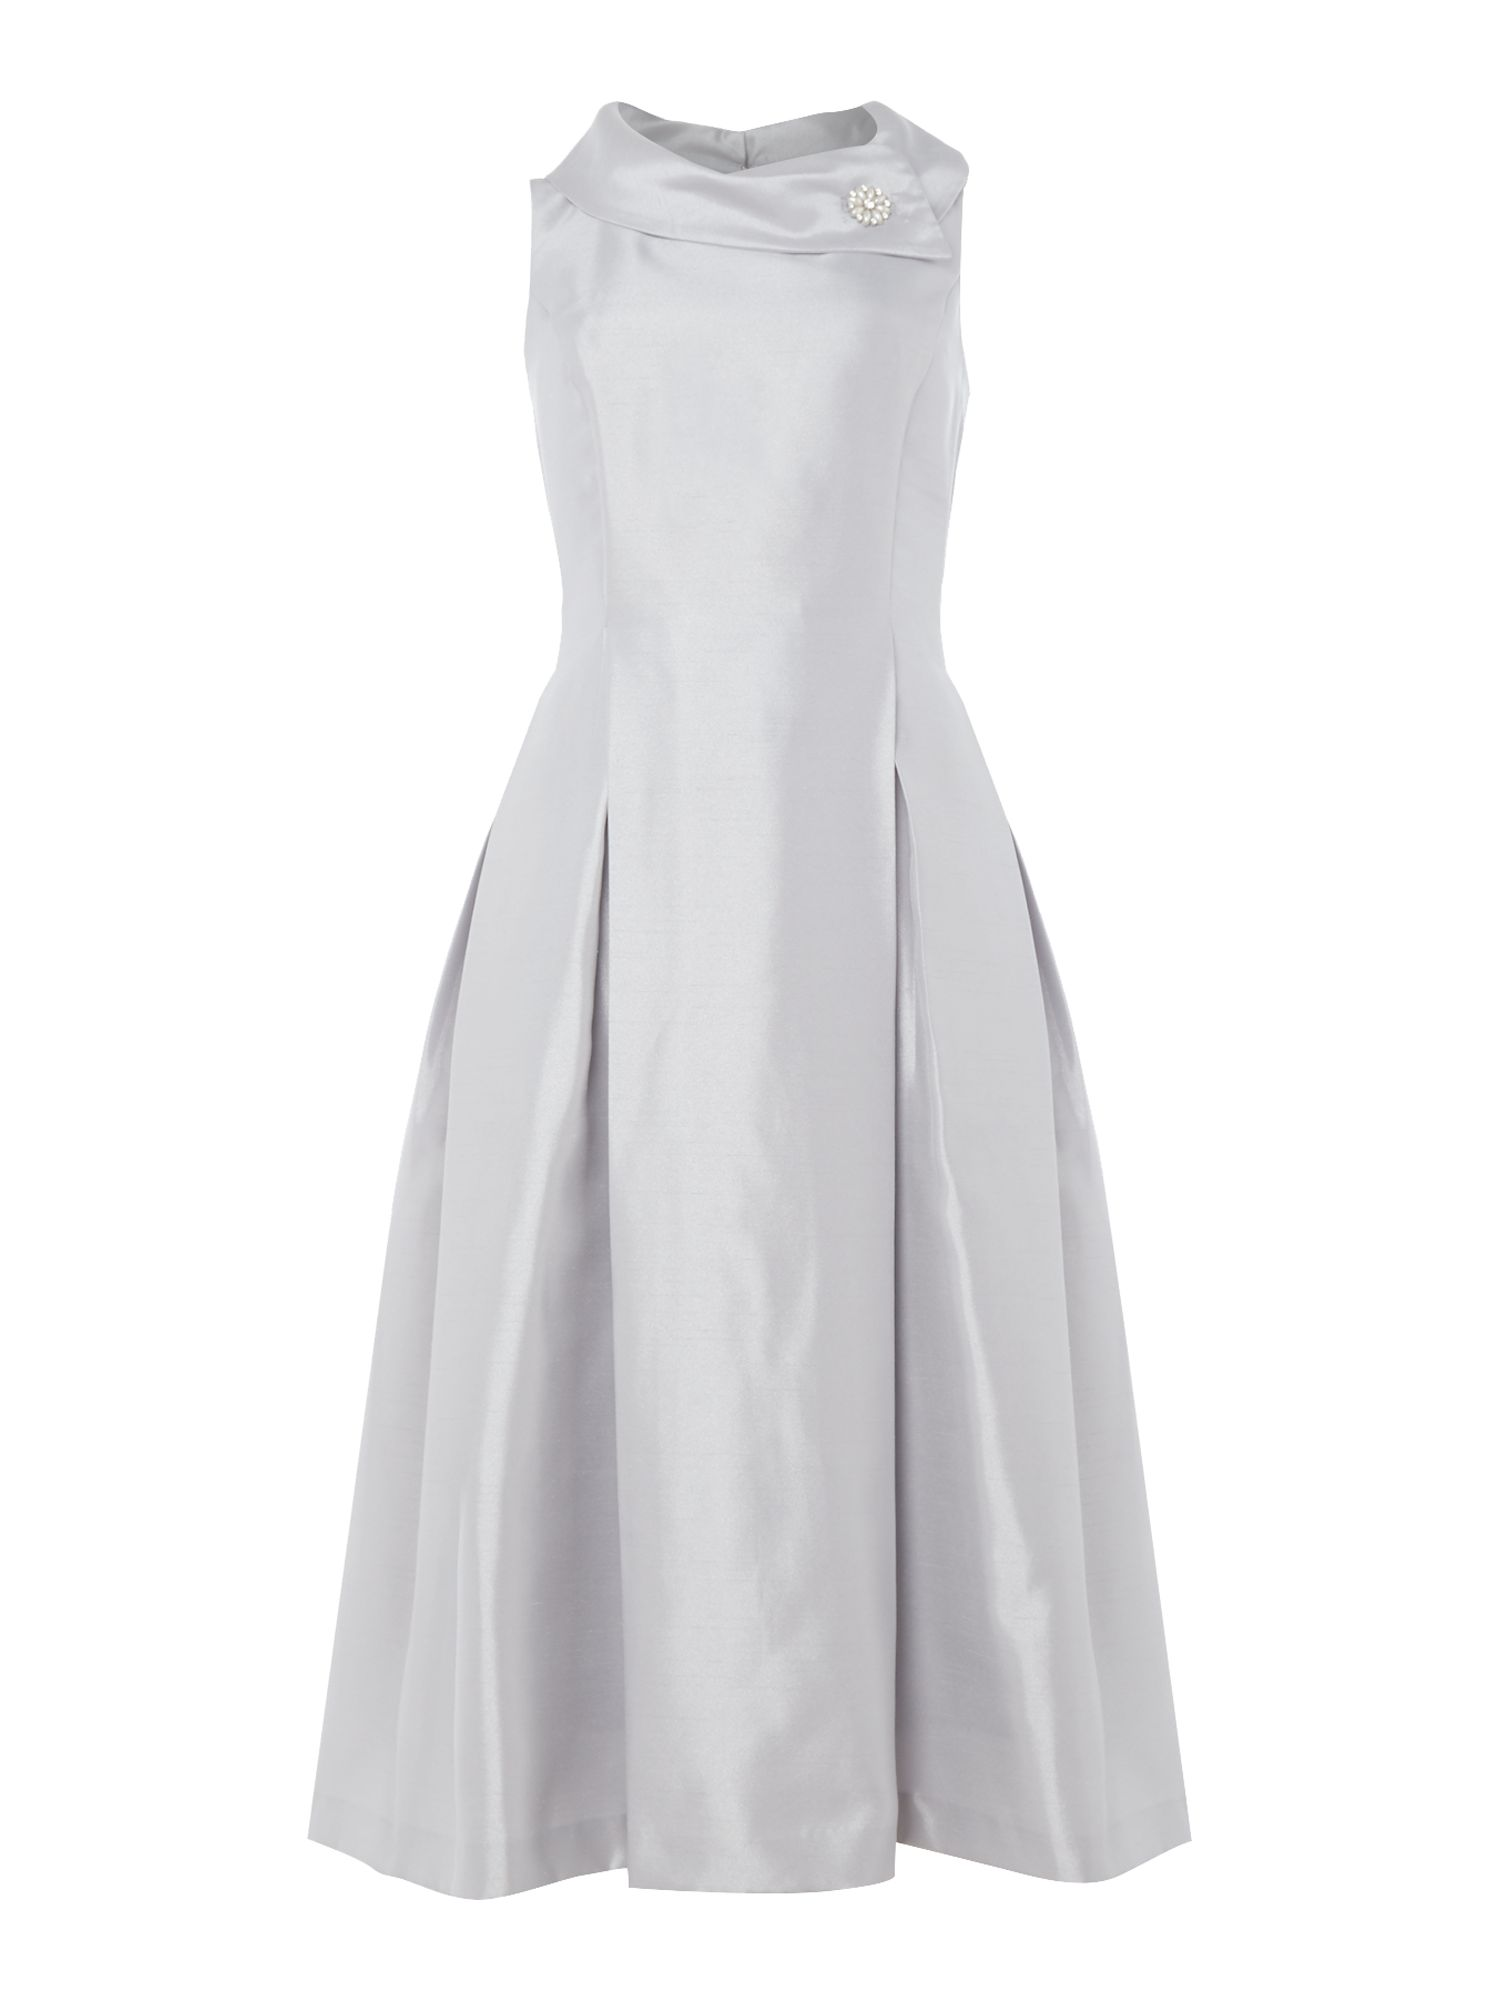 Tahari ASL Silver Envelope Collar Midi Dress, Silver Silverlic